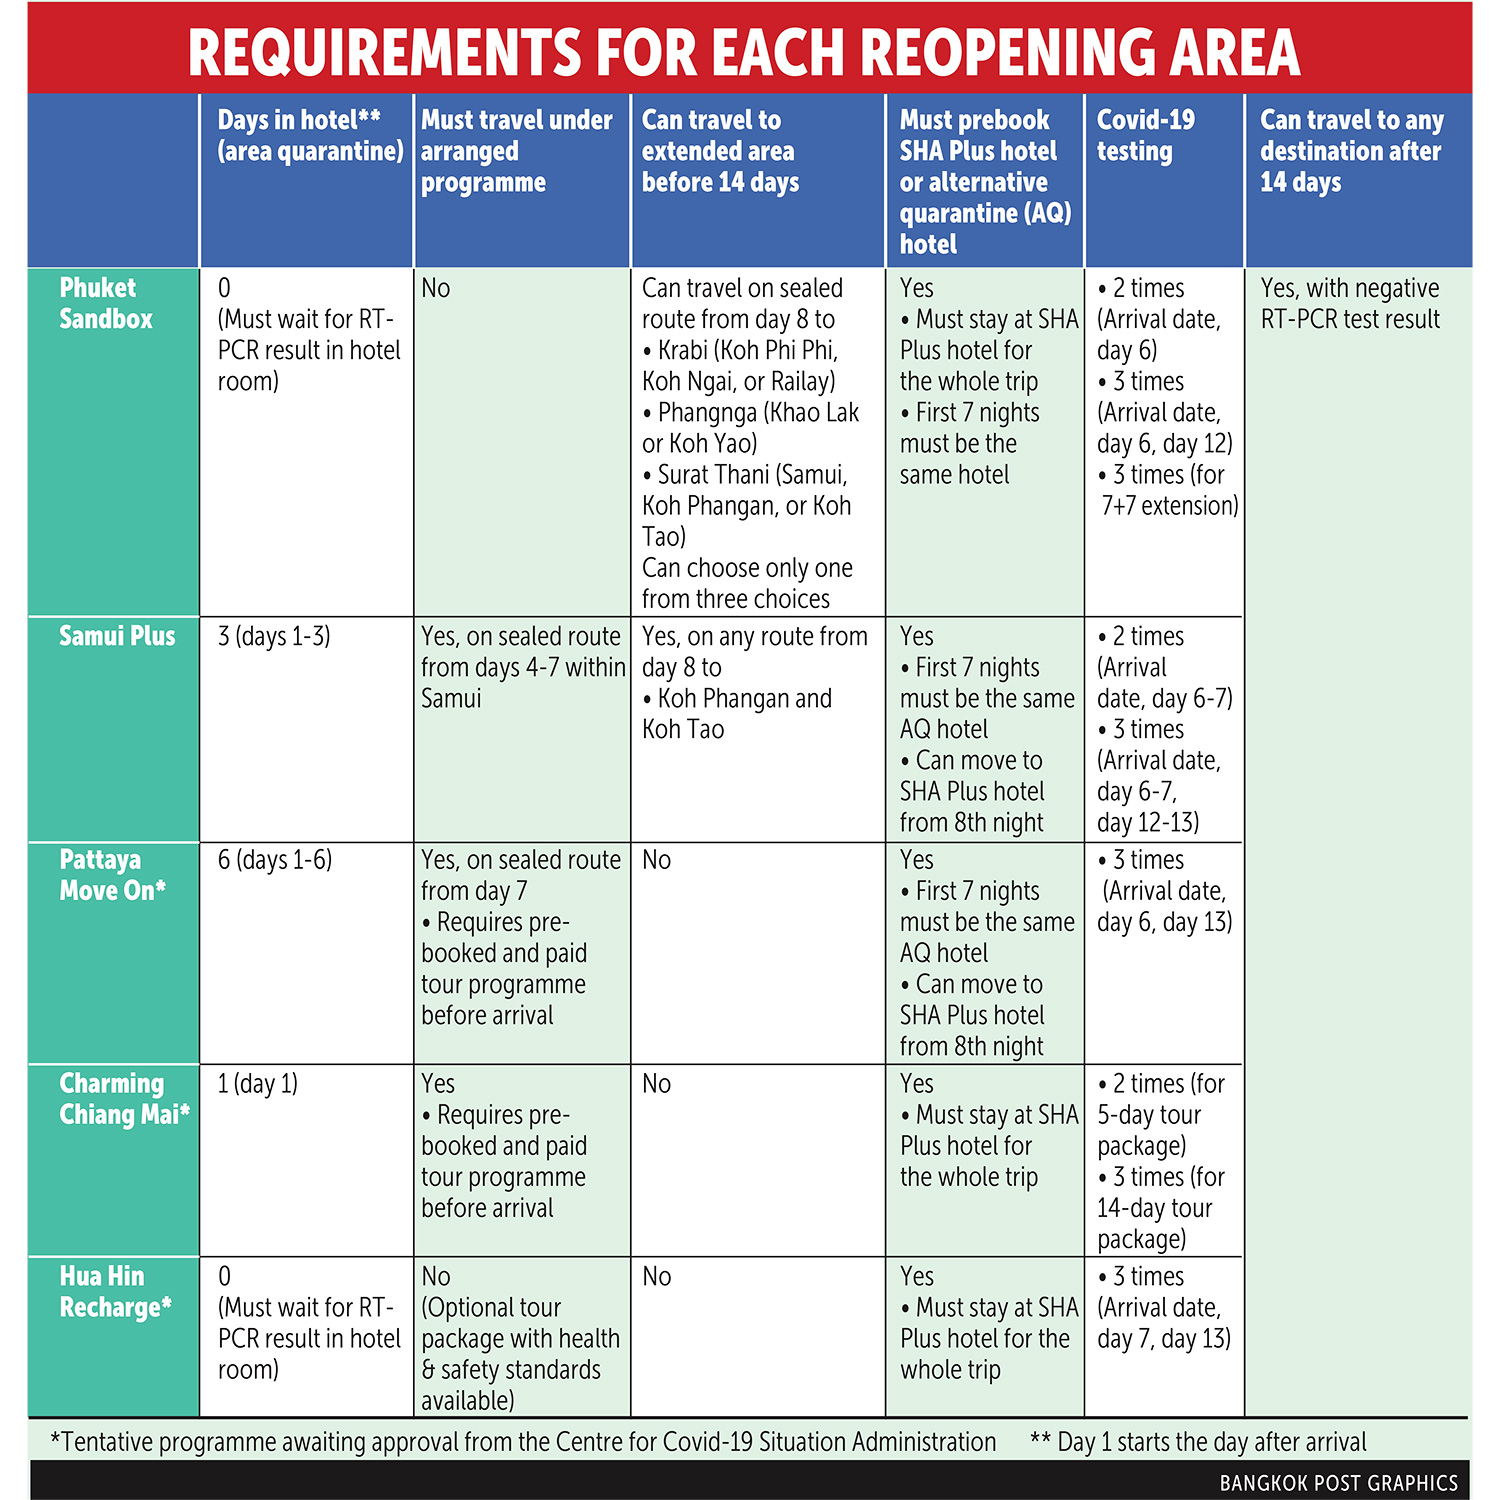 Entry requirements for Thailand sandbox